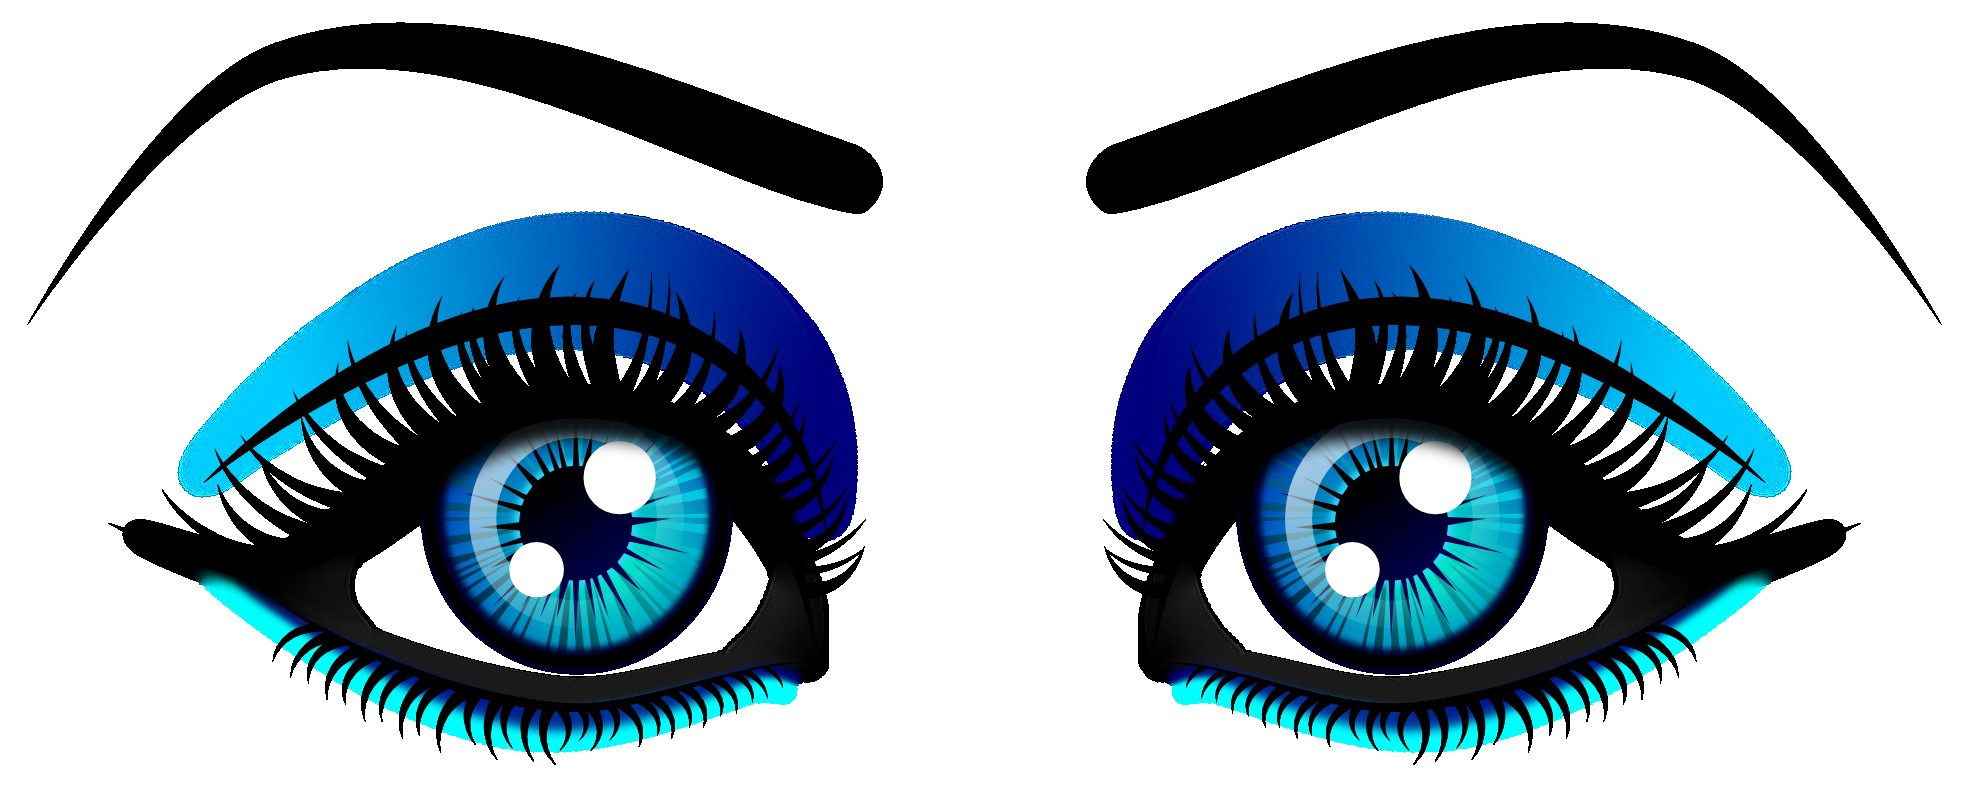 1969x788 Eye Clipart Free Stock Photo Public Domain Pictures Remarkable